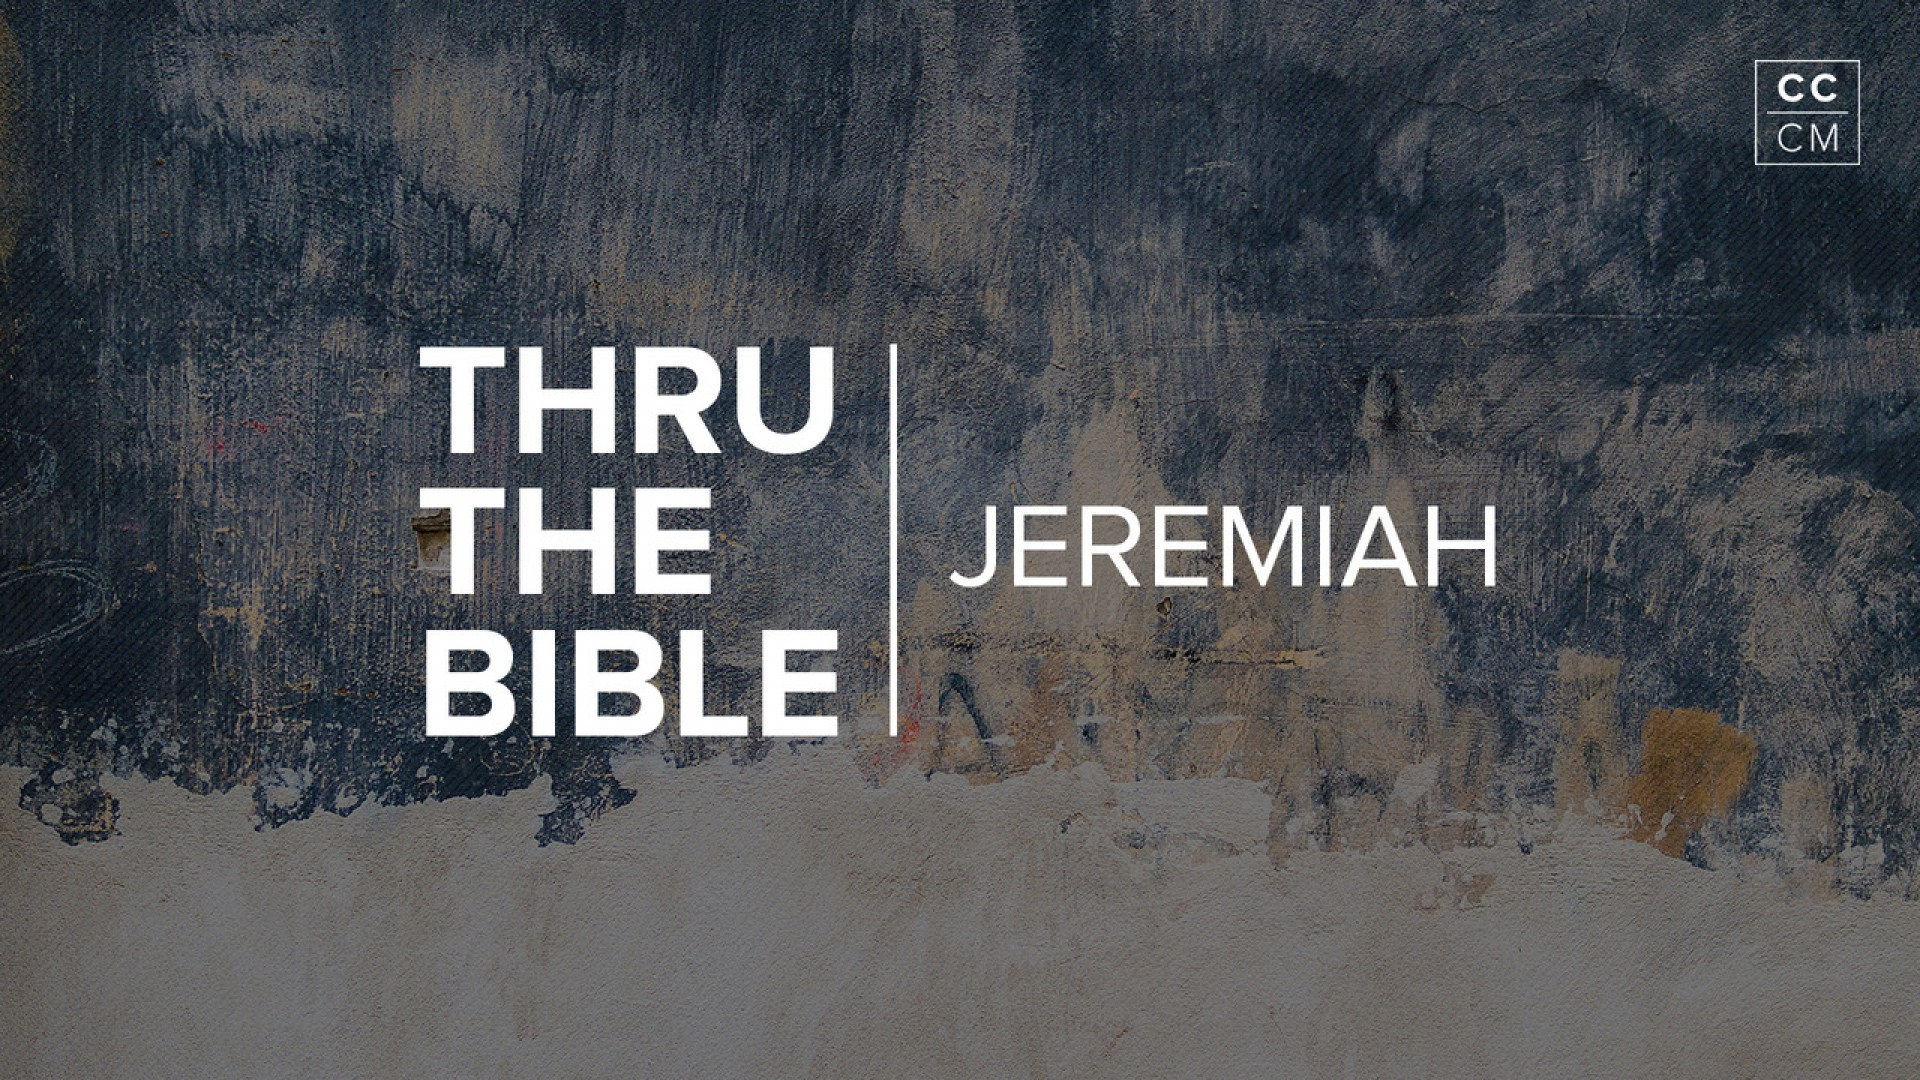 Jeremiah Thru the Bible FH SS 1920x1080 01